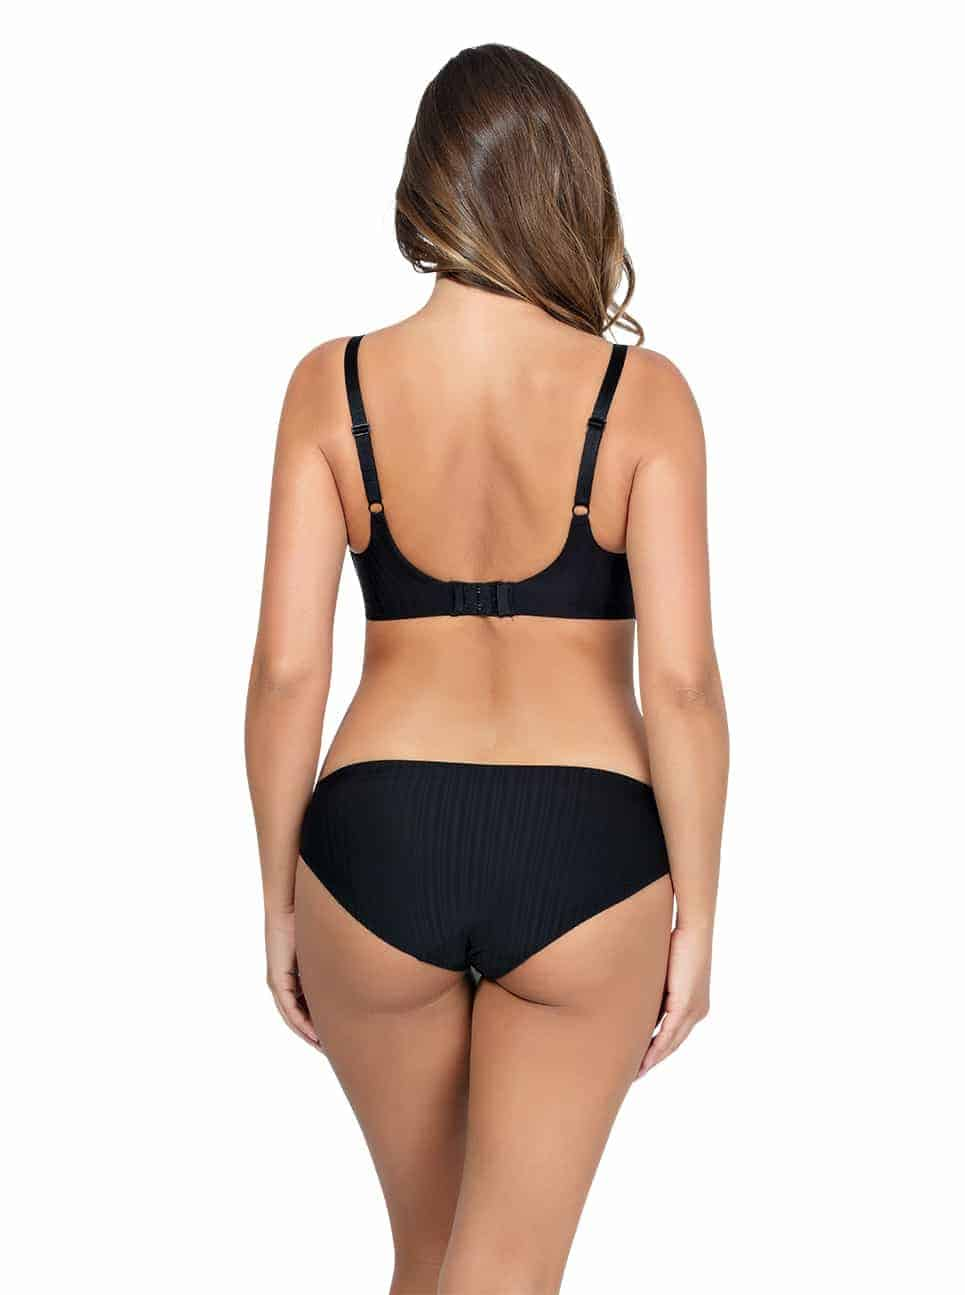 PARFAIT Aline Wire FreePaddedBraP5252 BikiniP5253 Black Back2 - Aline Wire-Free Padded Bra - Black - P5252